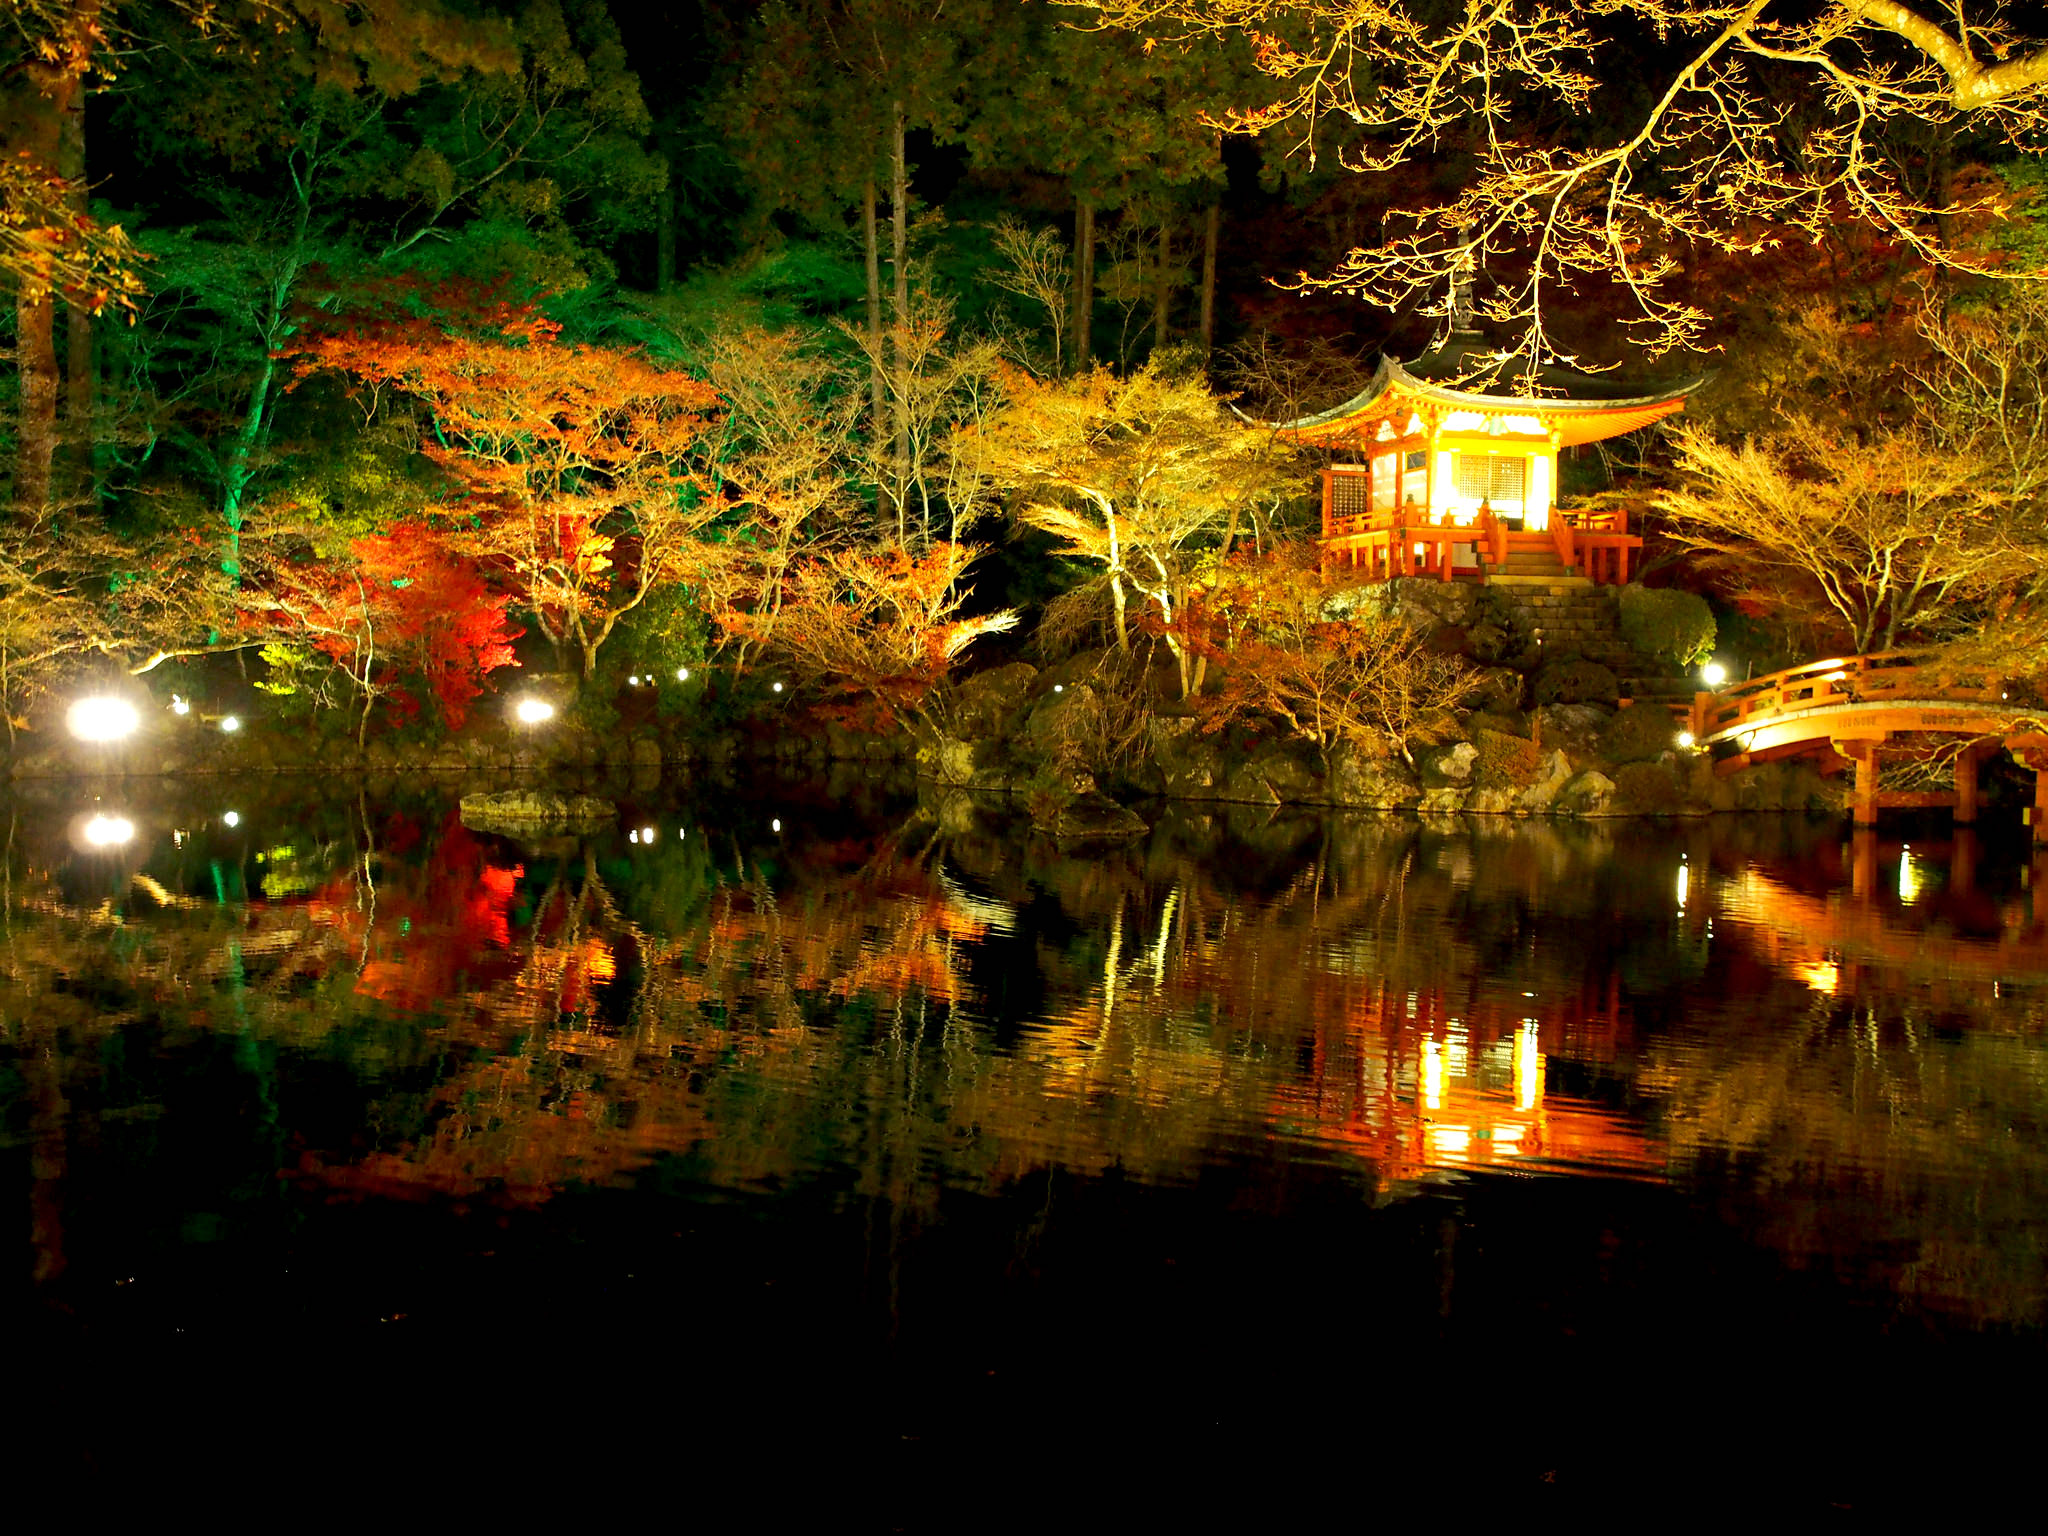 At Daigo-ji in Kyoto, the fall colors are exquisite. ©TOKI